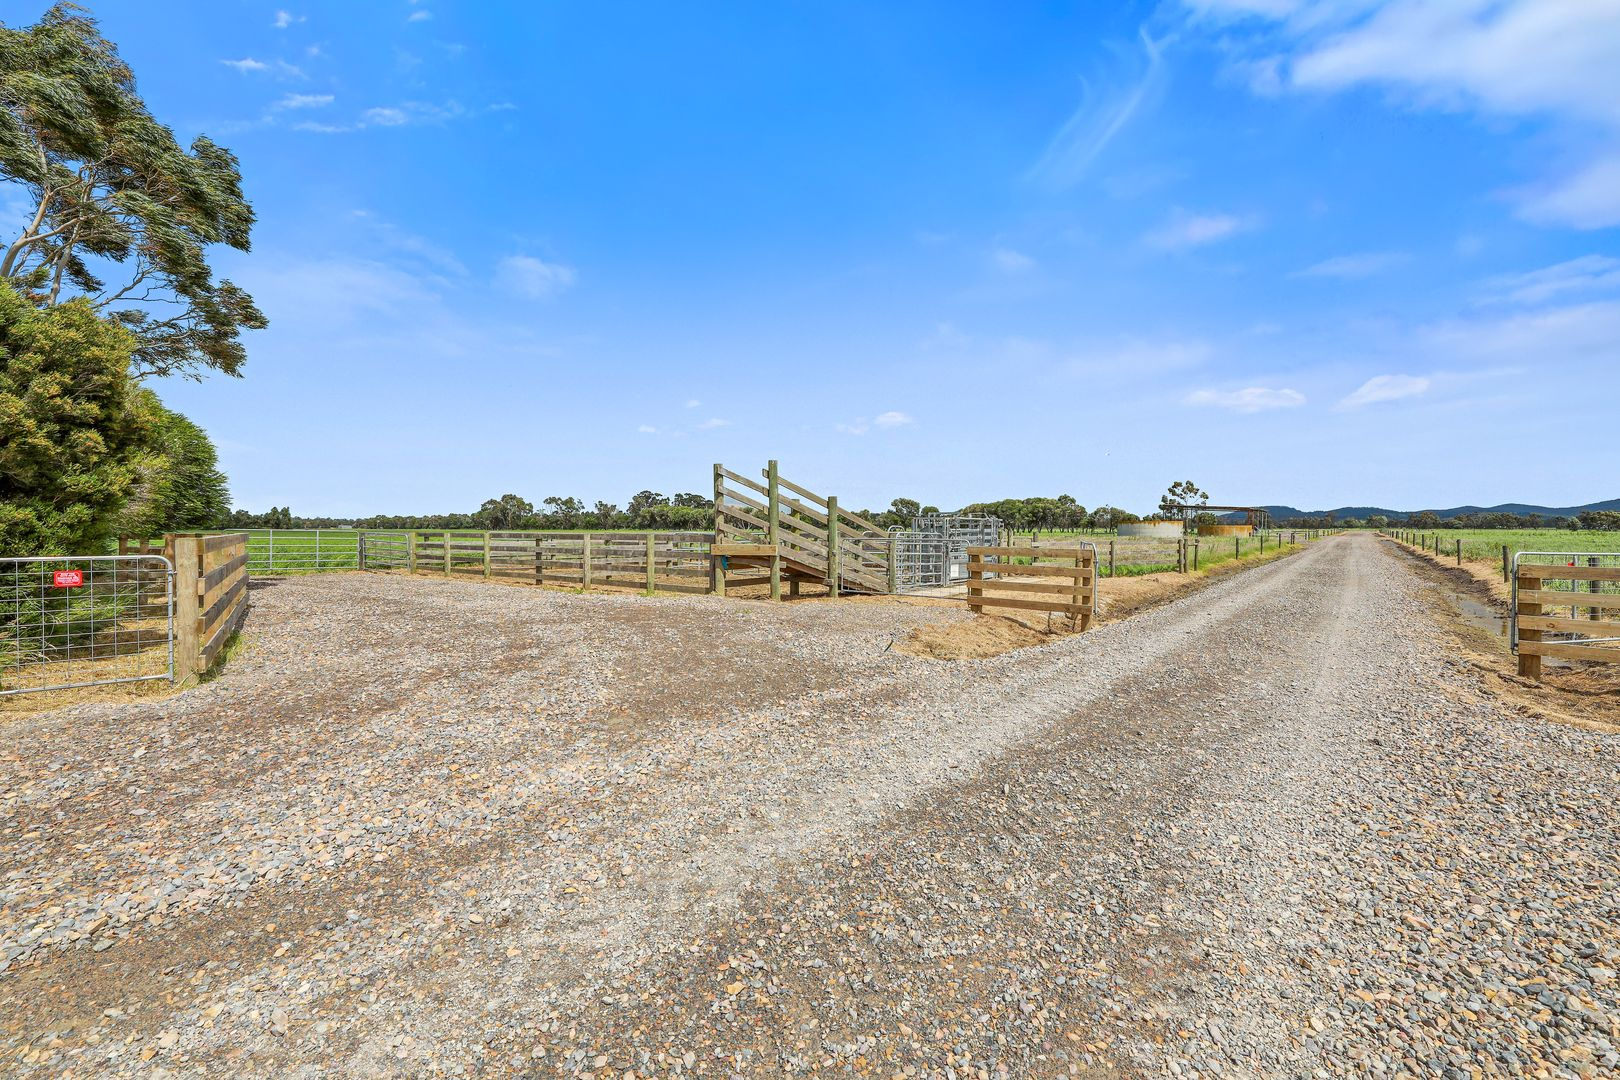 128 acres Morrison Road Labertouche, Labertouche VIC 3816, Image 2